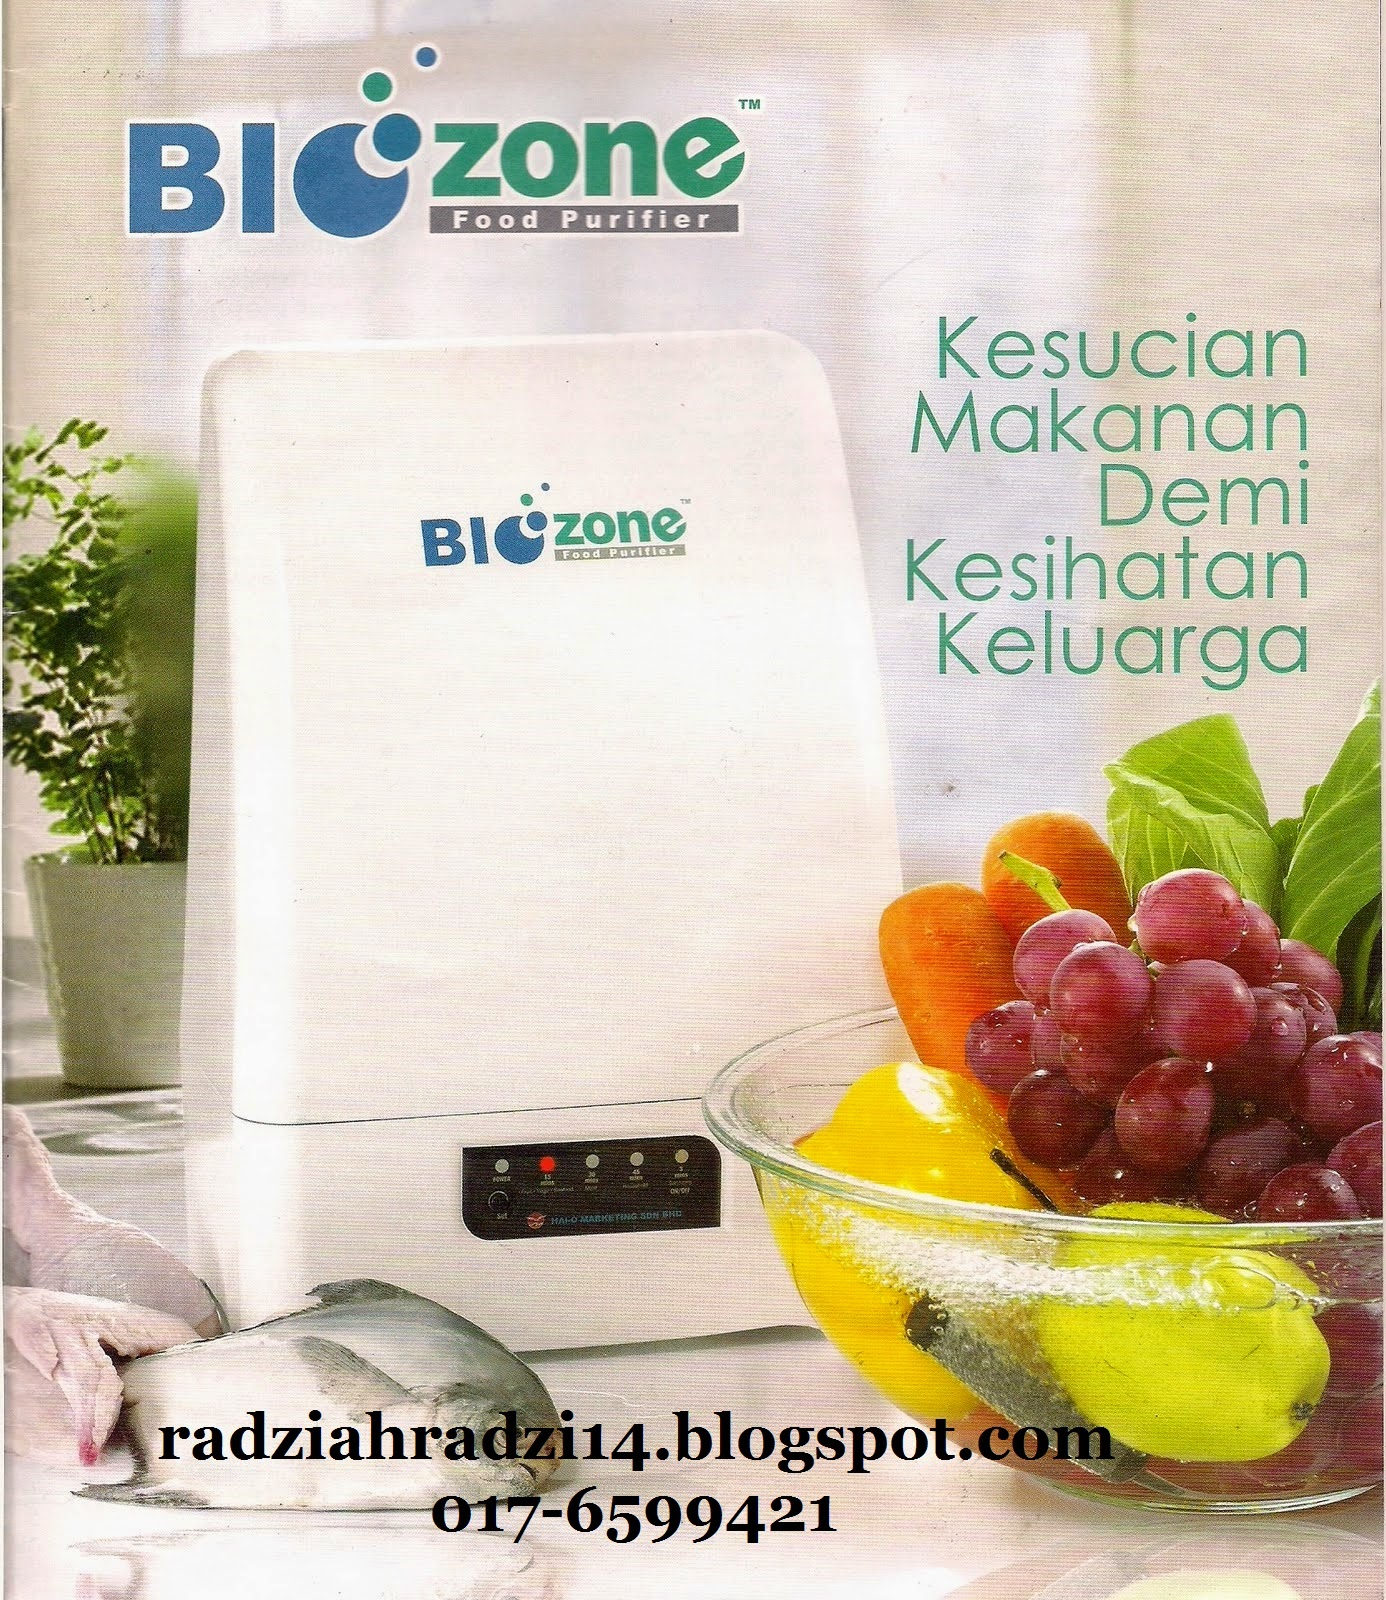 food, toxin, pesticide,chicken,fruits, vegetables,colouring, chemical,biozone food purifier,detoxifiying, antibiotics,bacteria,poultry,meats,water soluble,fat soluble,bahan kimia,kesihatan